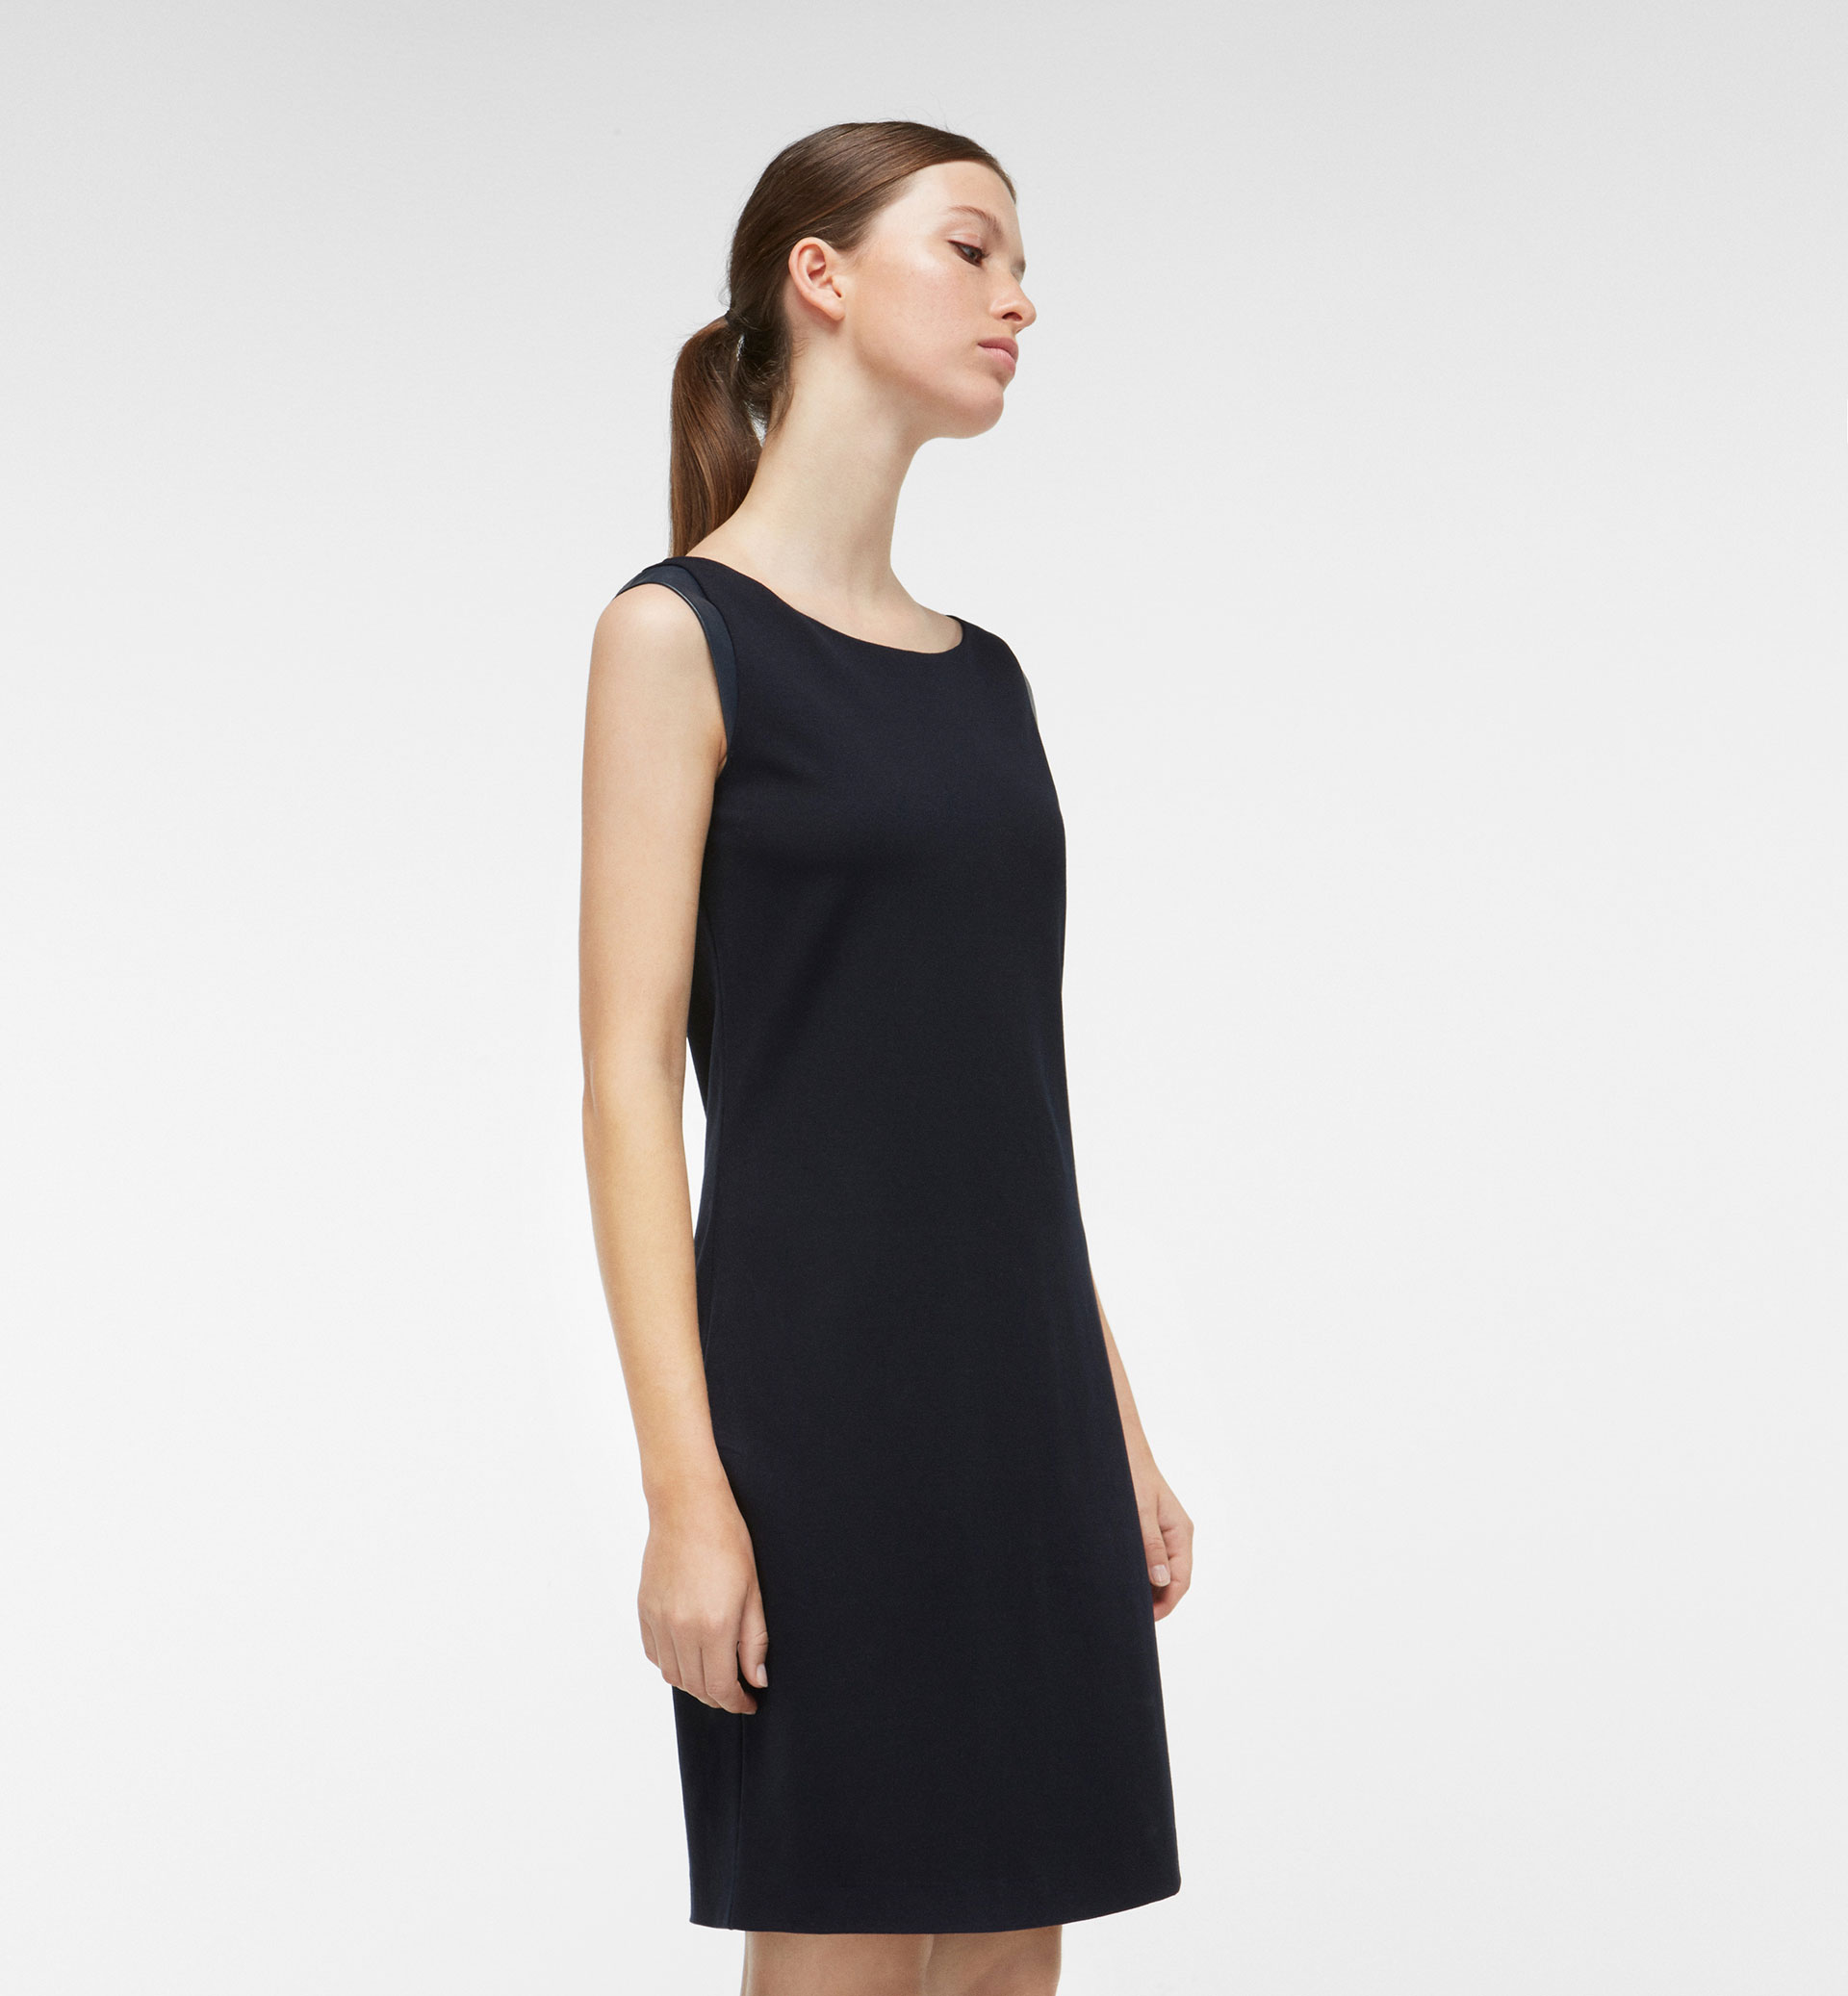 SLEEVELESS DRESS WITH LEATHER DETAILING